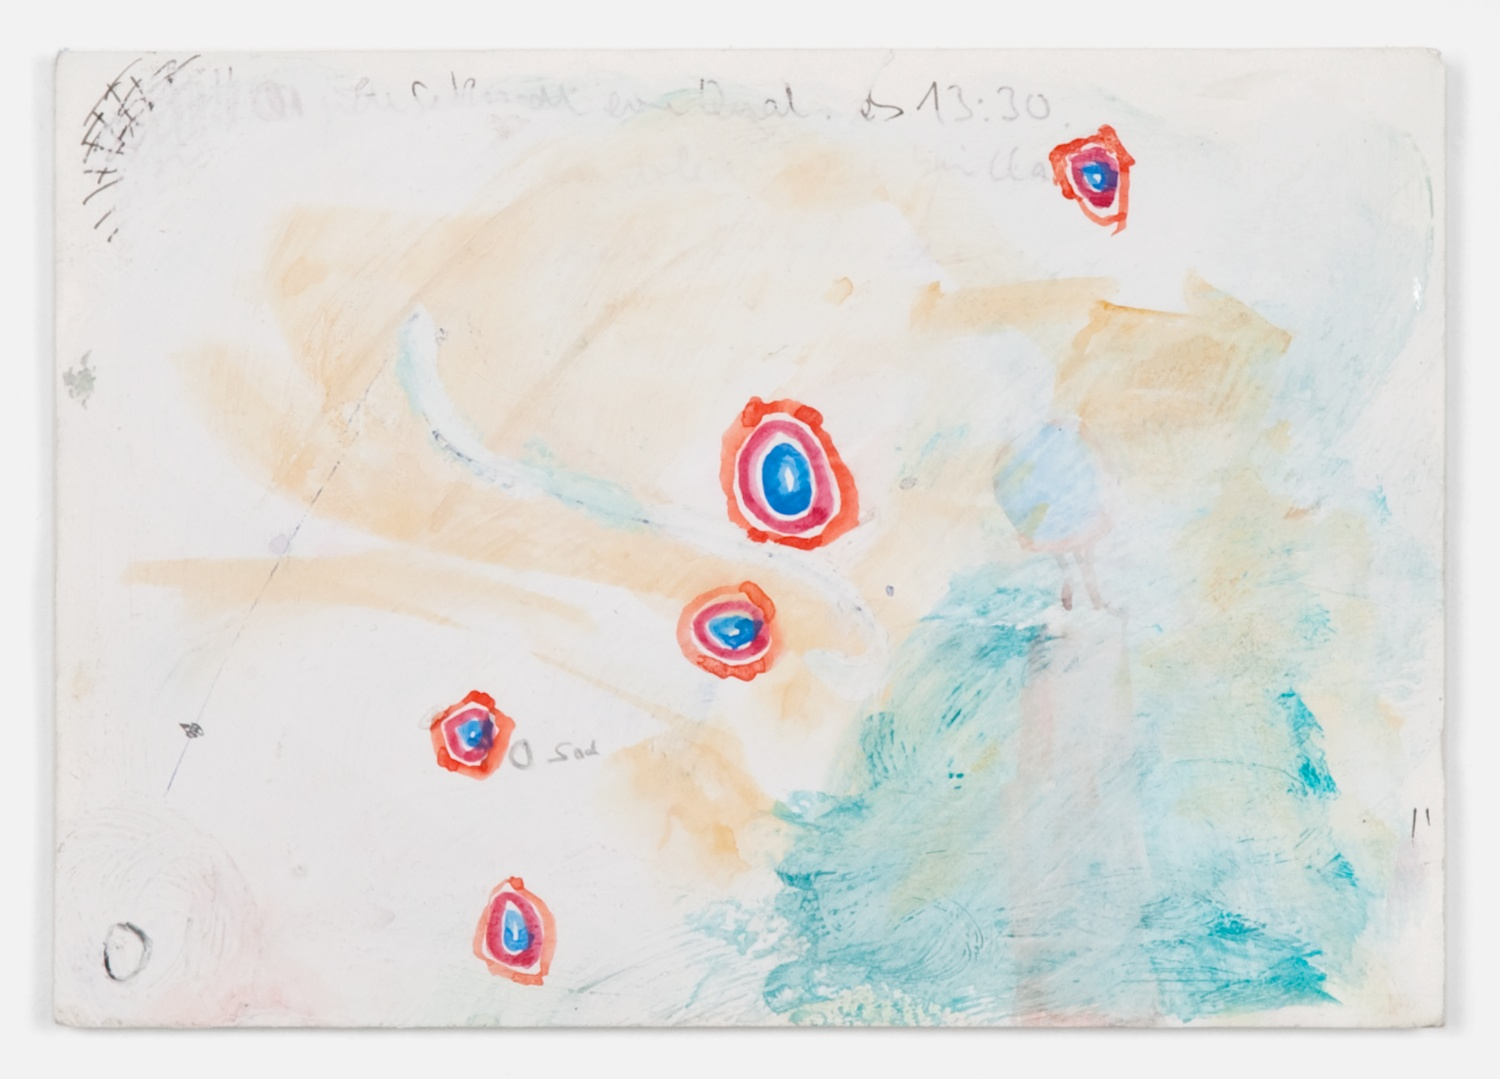 Helena Huneke  Fishing for Composition  2012 Gouache, watercolor, acrylic, and ink on paper 5 ⅞h x 8 ¼w in HH001